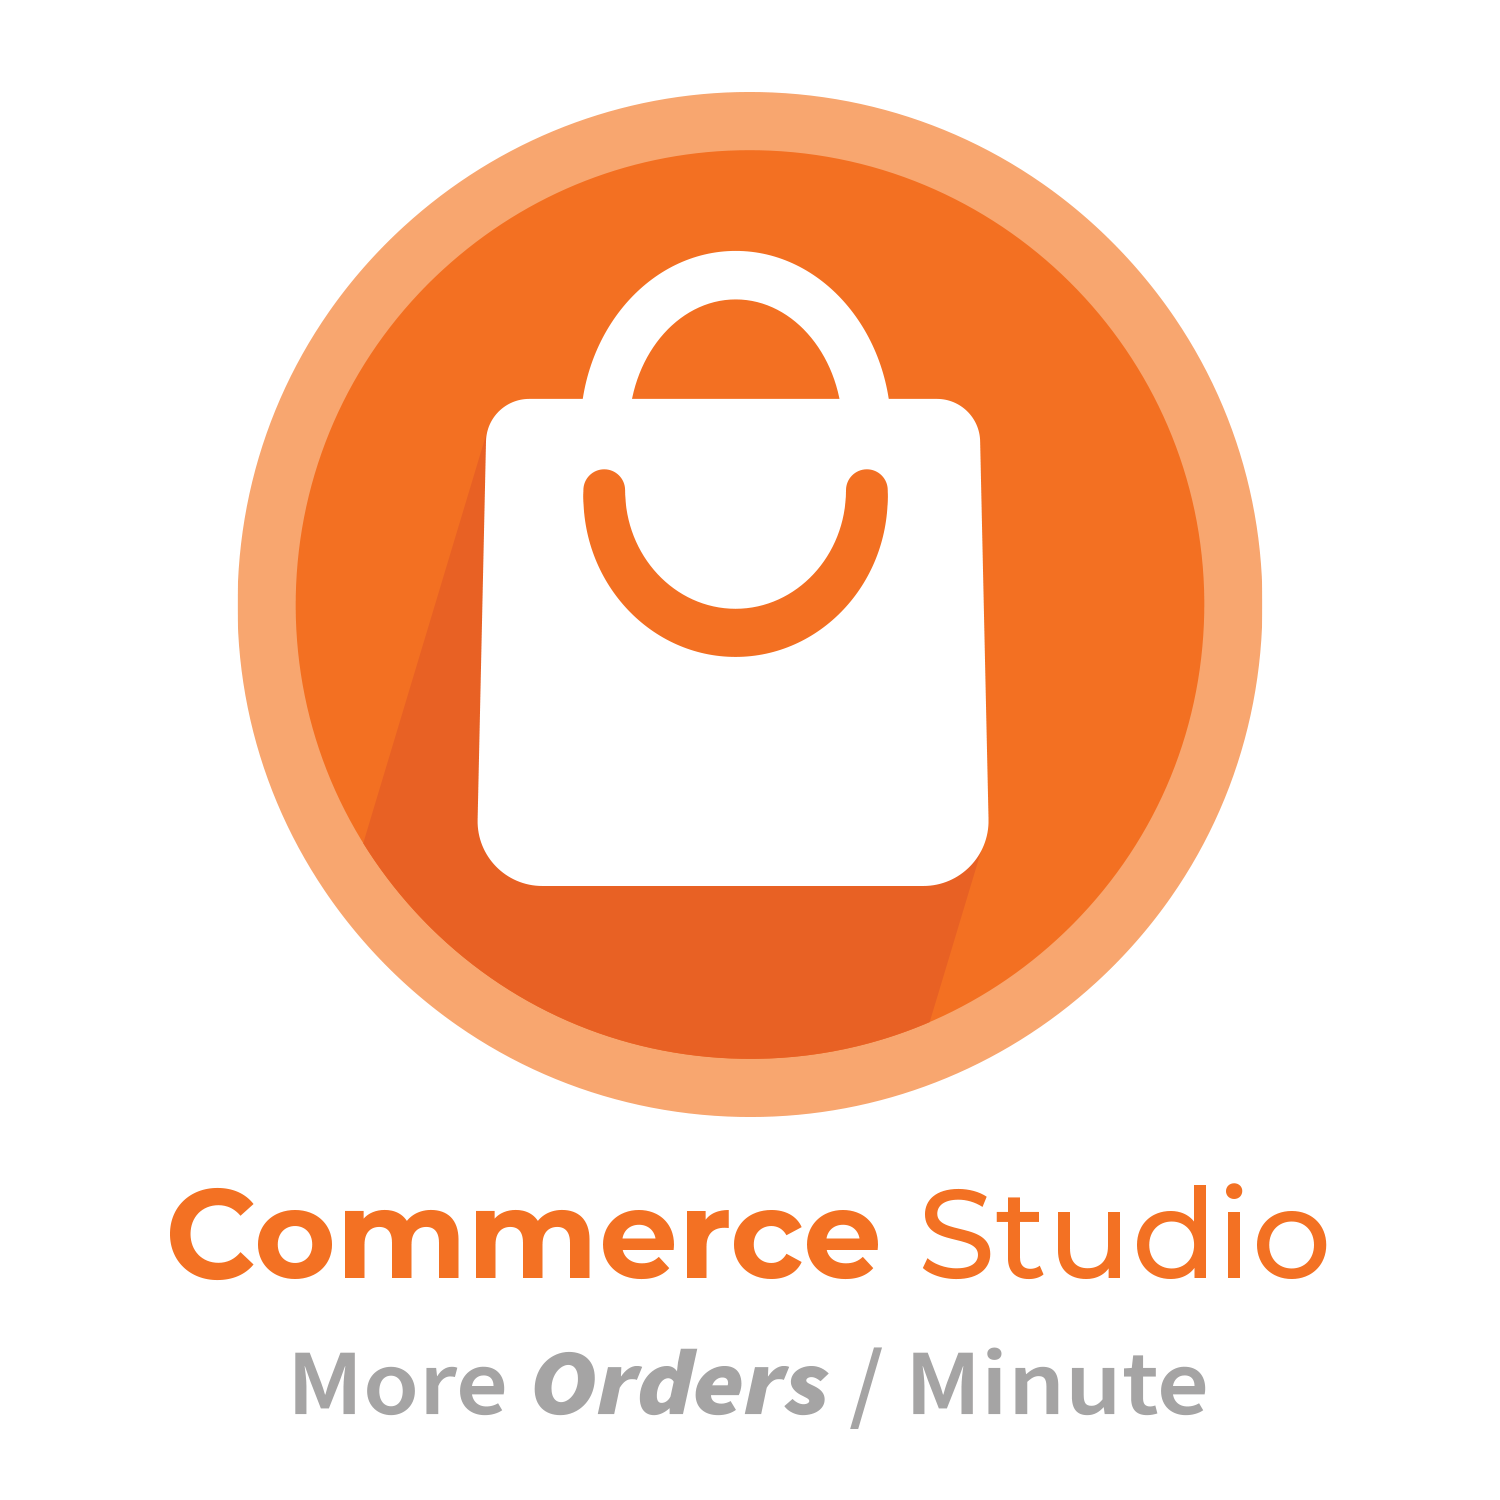 Commerce Studio